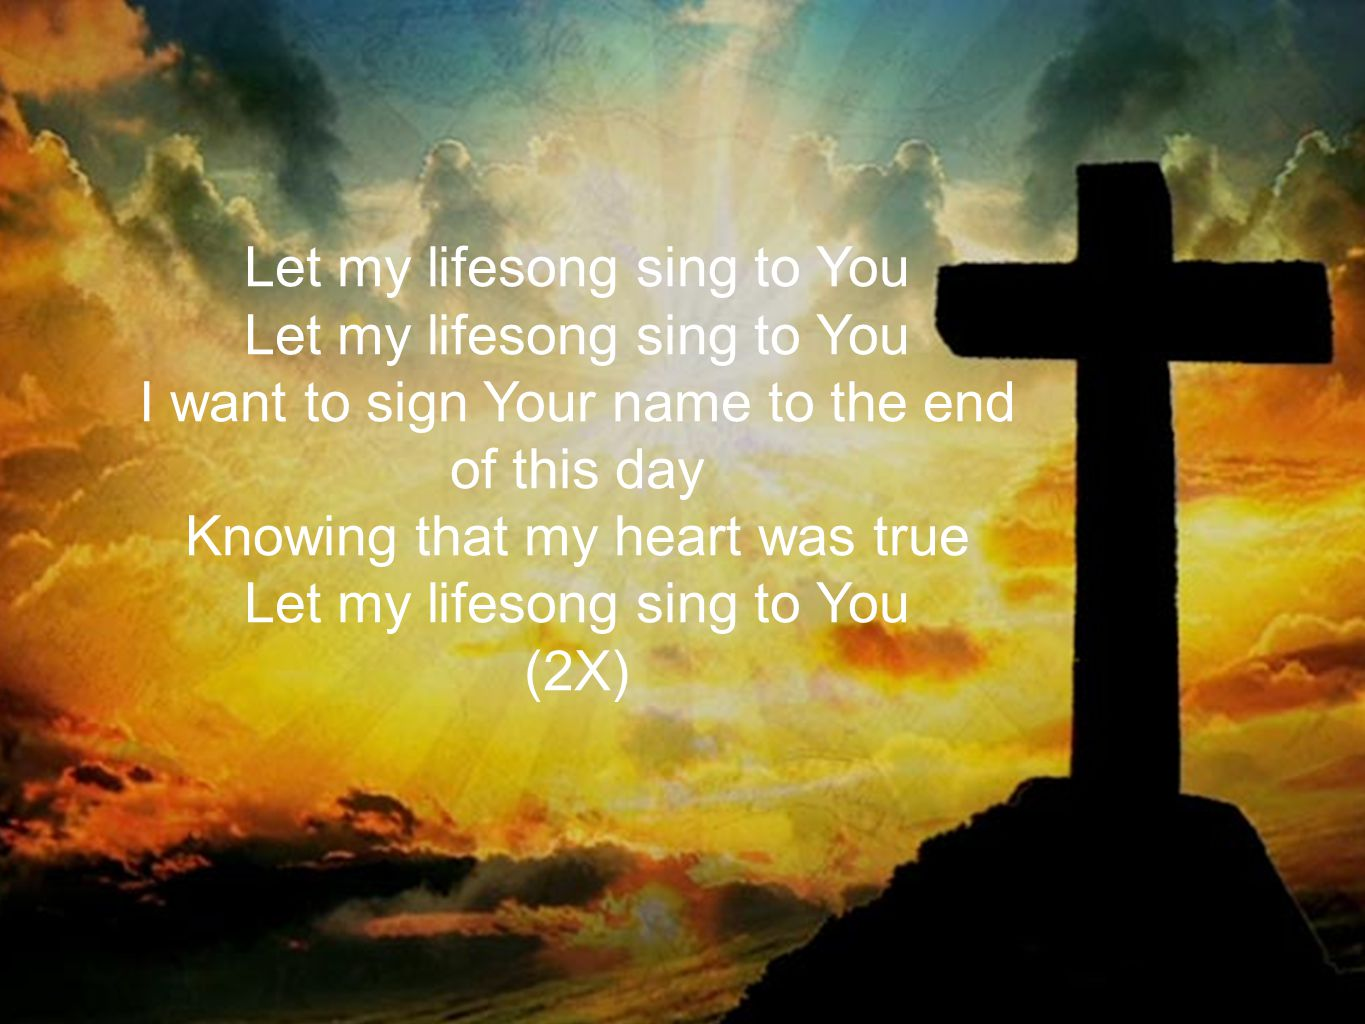 Let my lifesong sing to You I want to sign Your name to the end of this day Knowing that my heart was true Let my lifesong sing to You (2X)